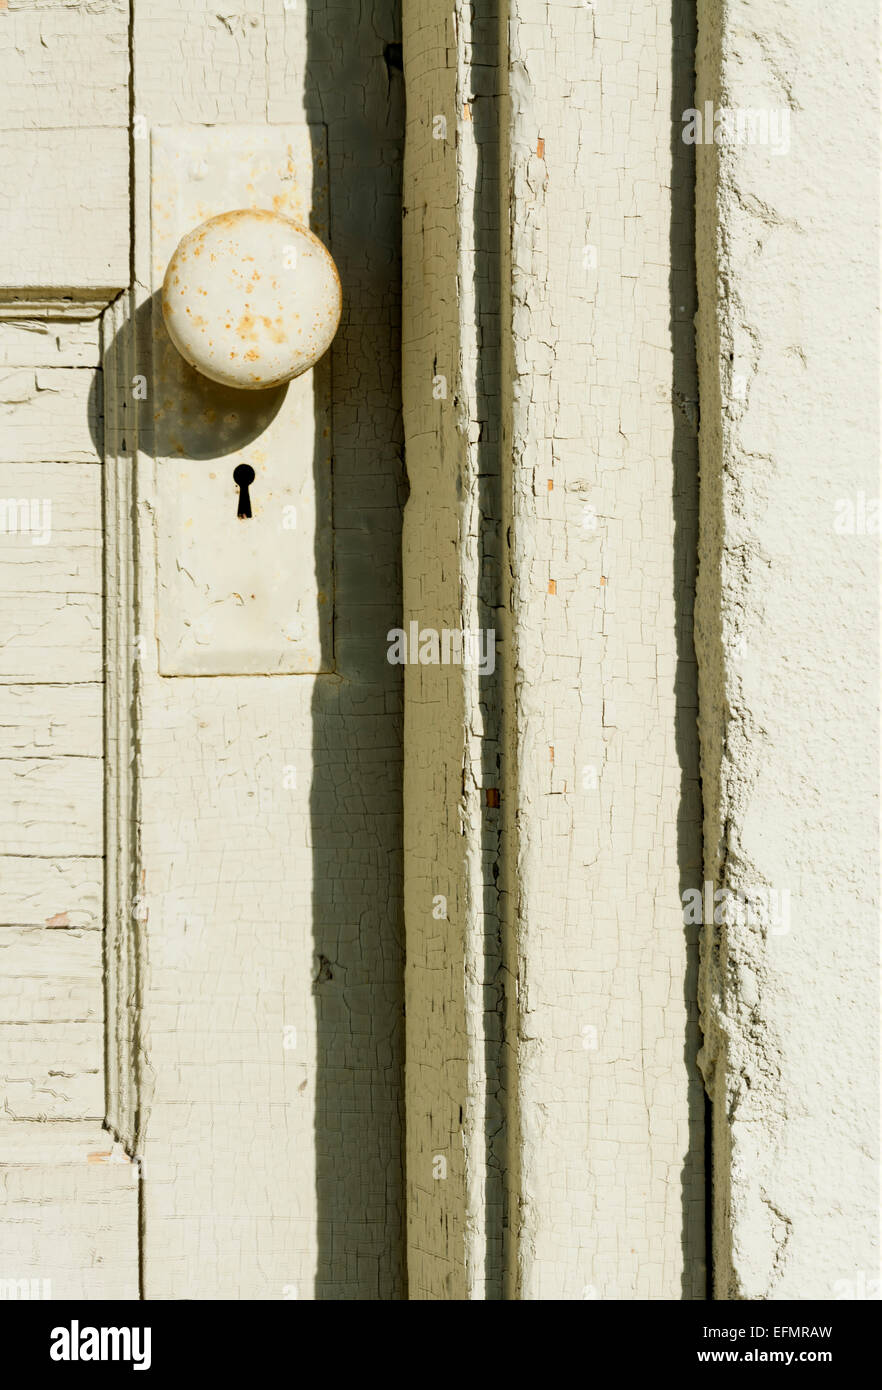 Old antique door knob with cracked paint - Stock Image